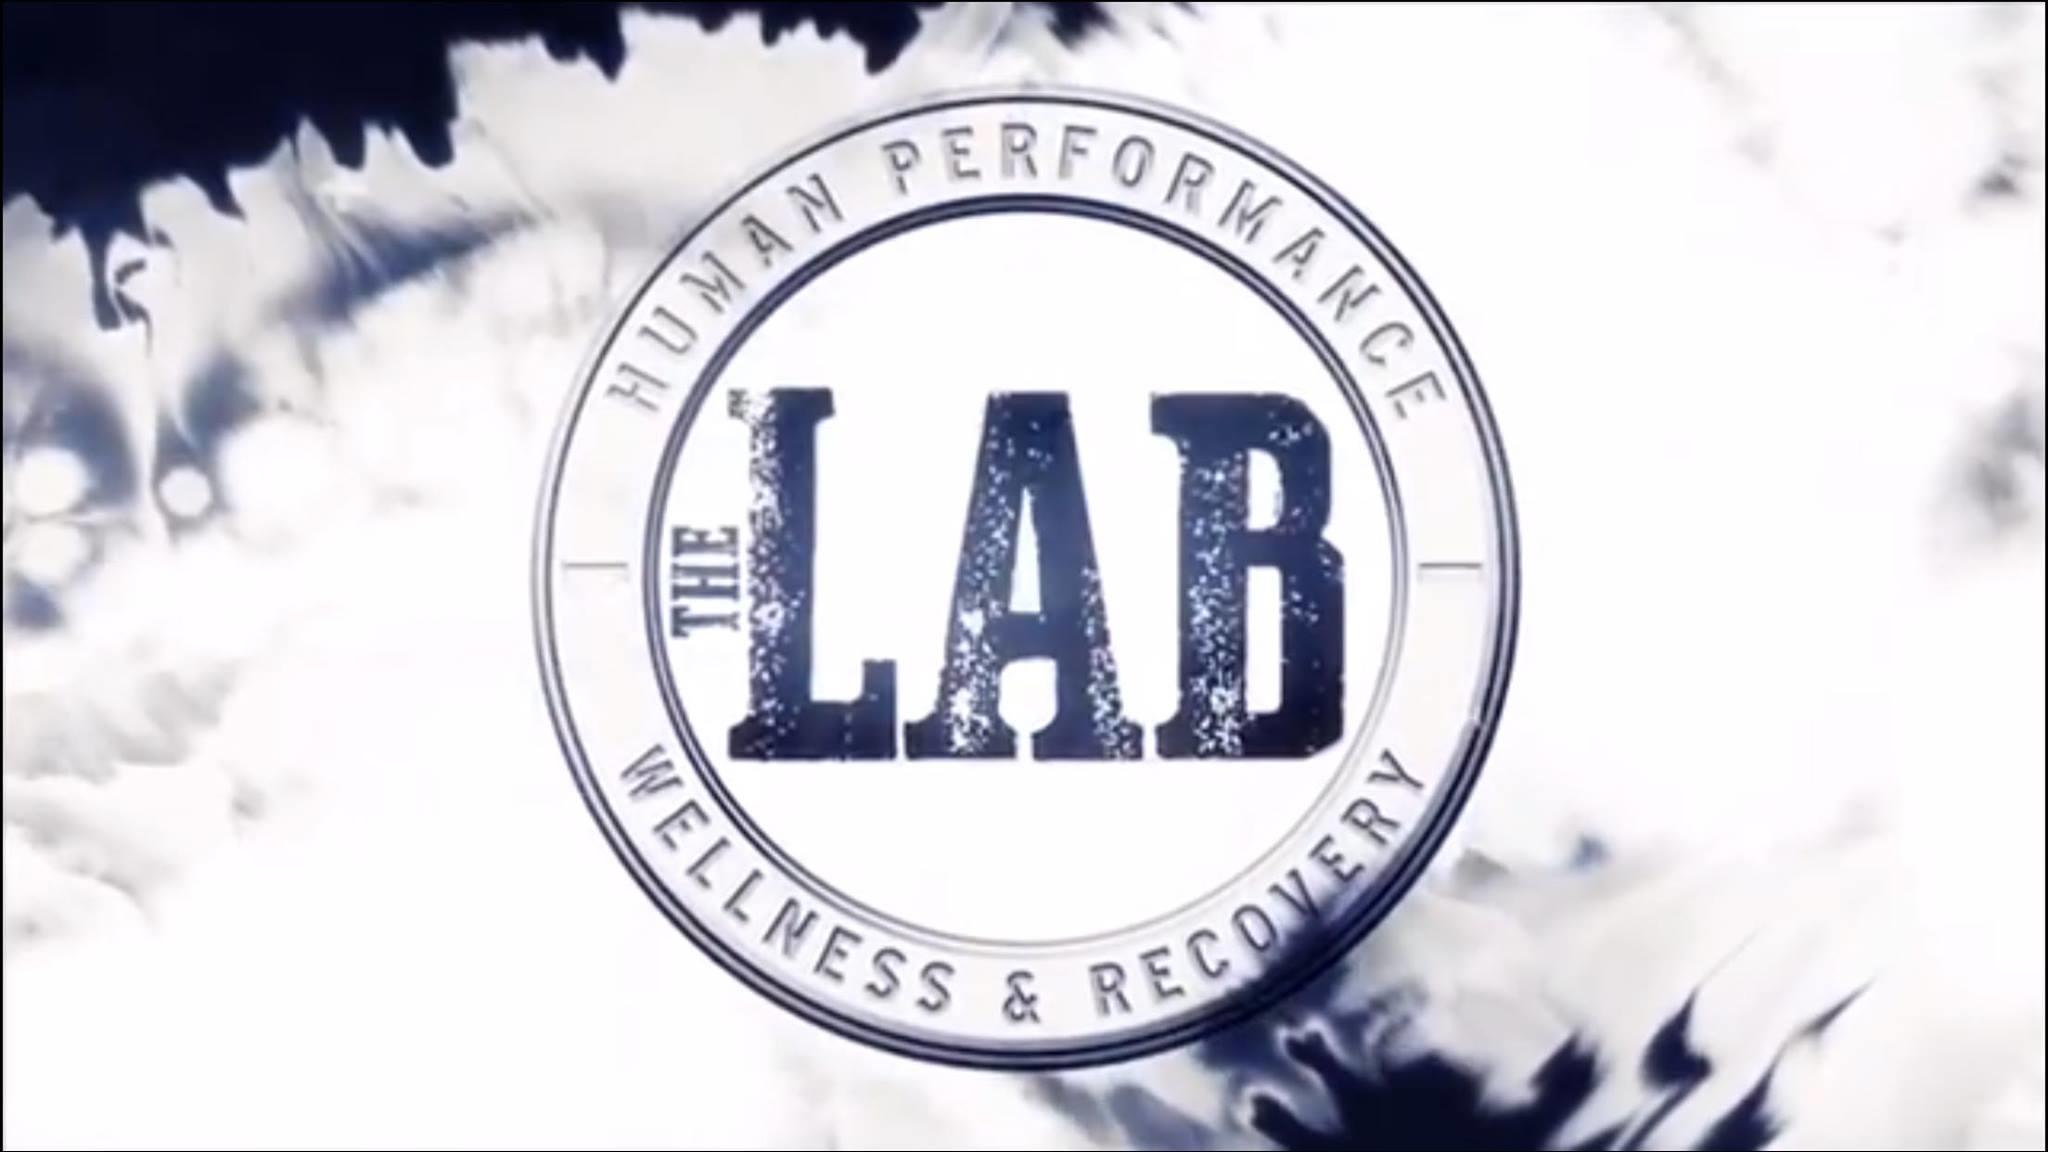 The Lab Performance & Recovery Center image 2